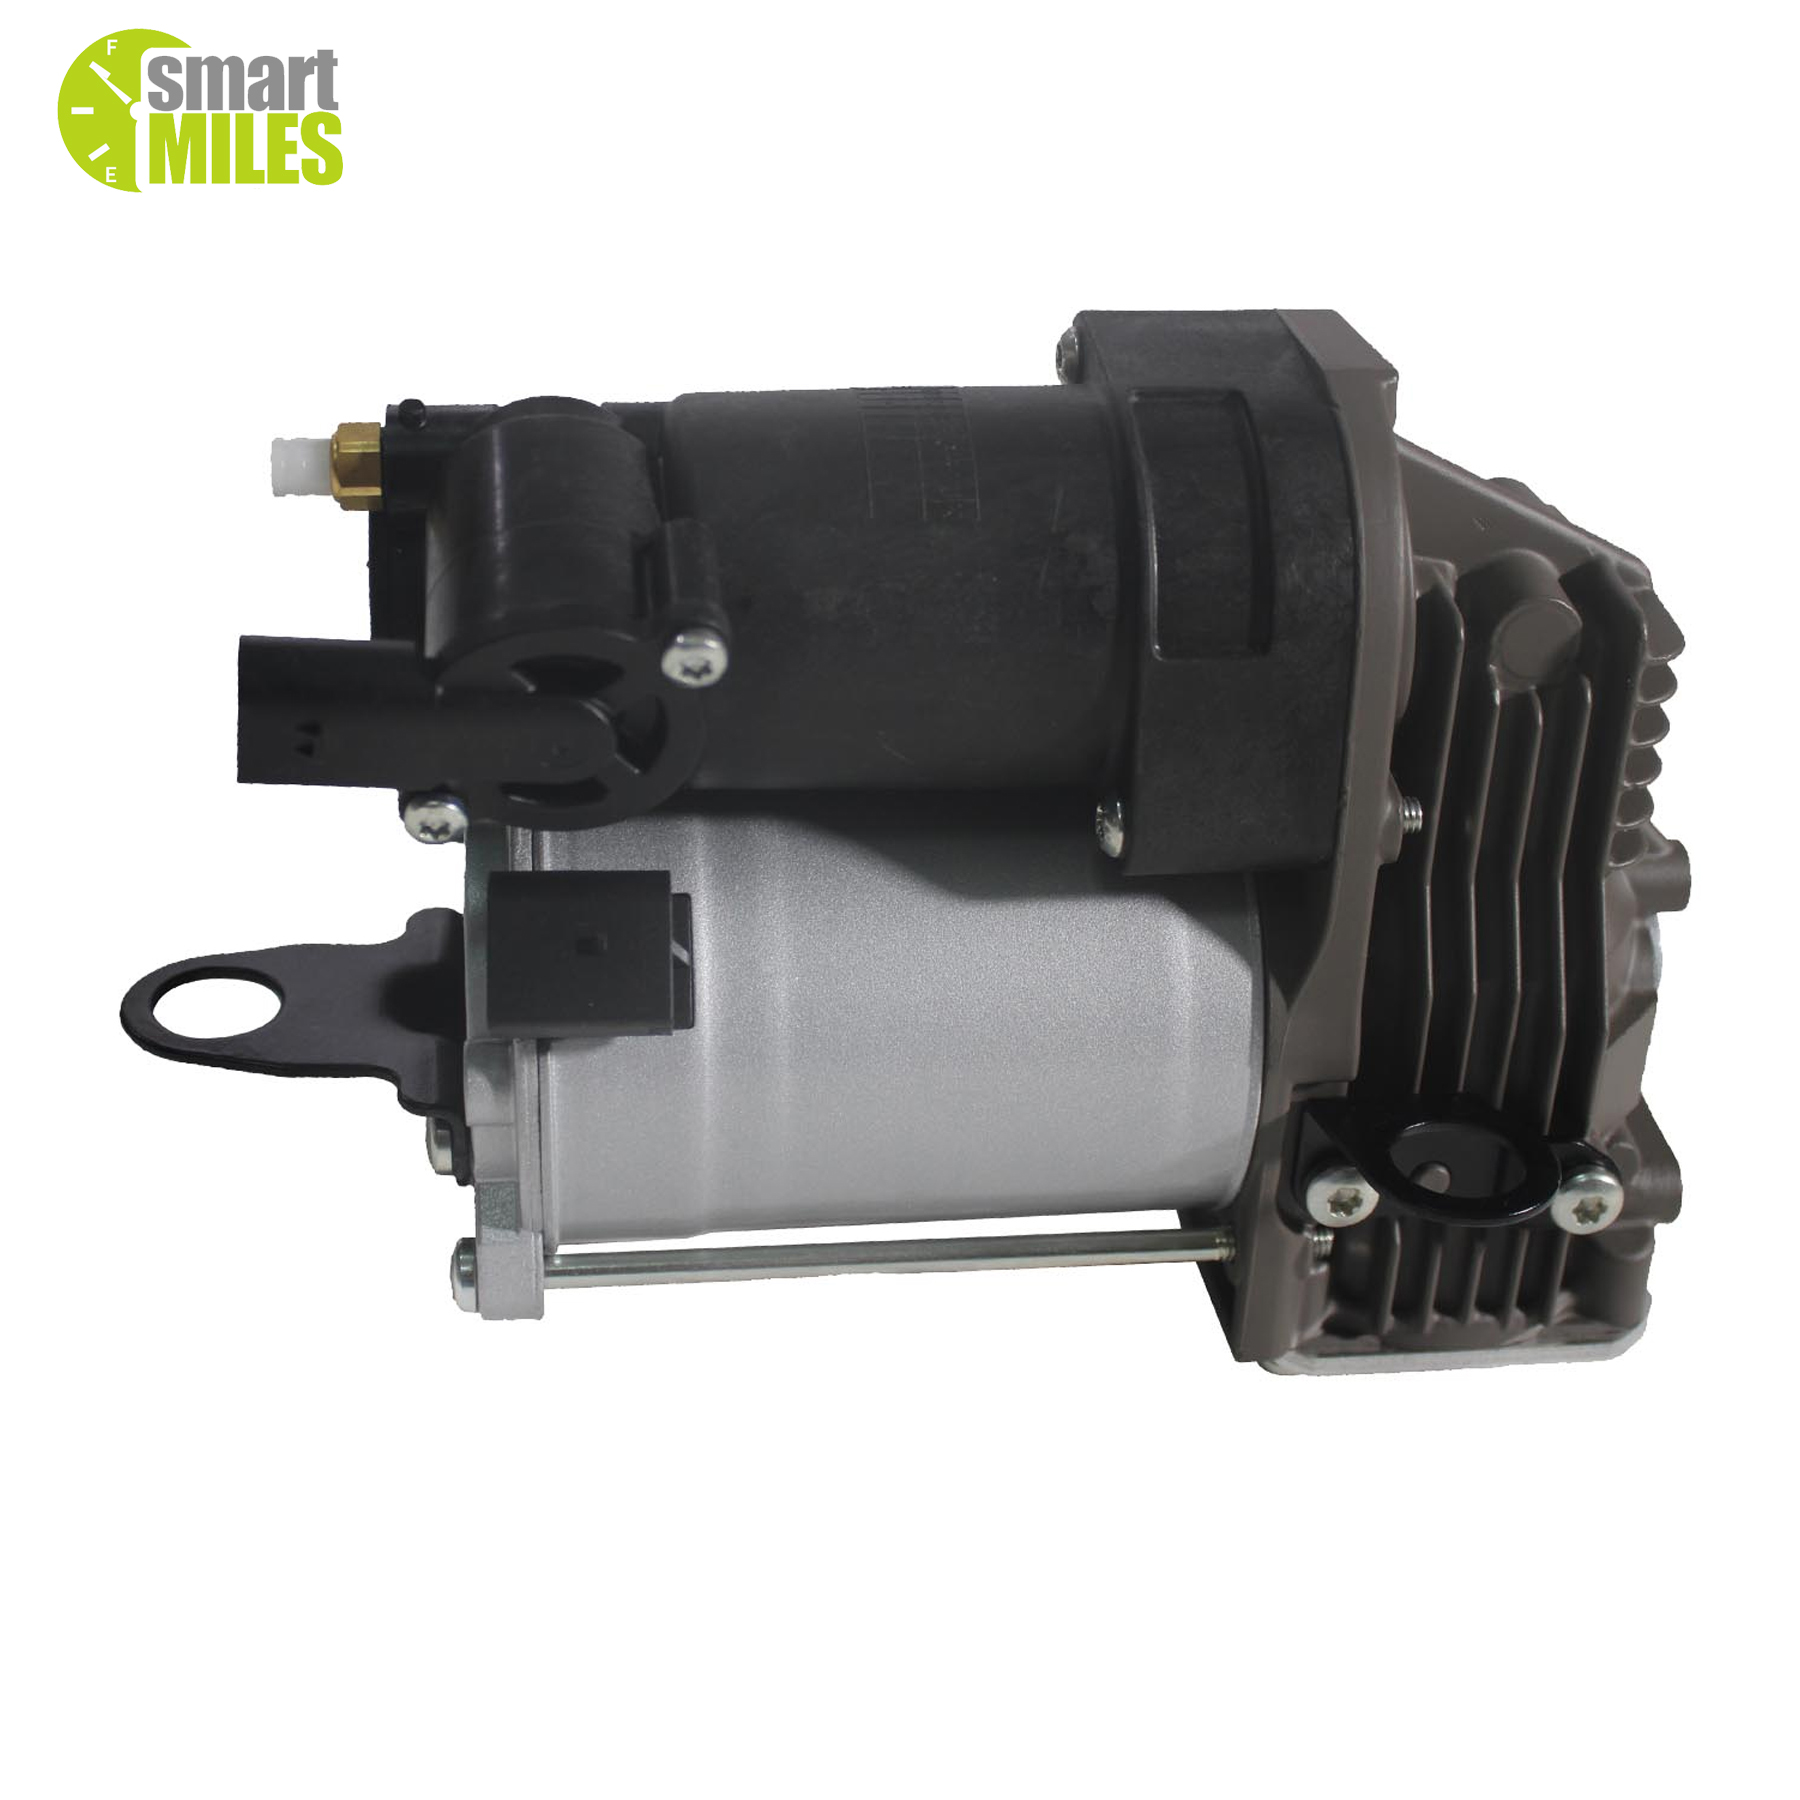 2019 Mercedes Benz Gls Class: 1663200104 Air Suspension Compressor Fits Mercedes-Benz GL